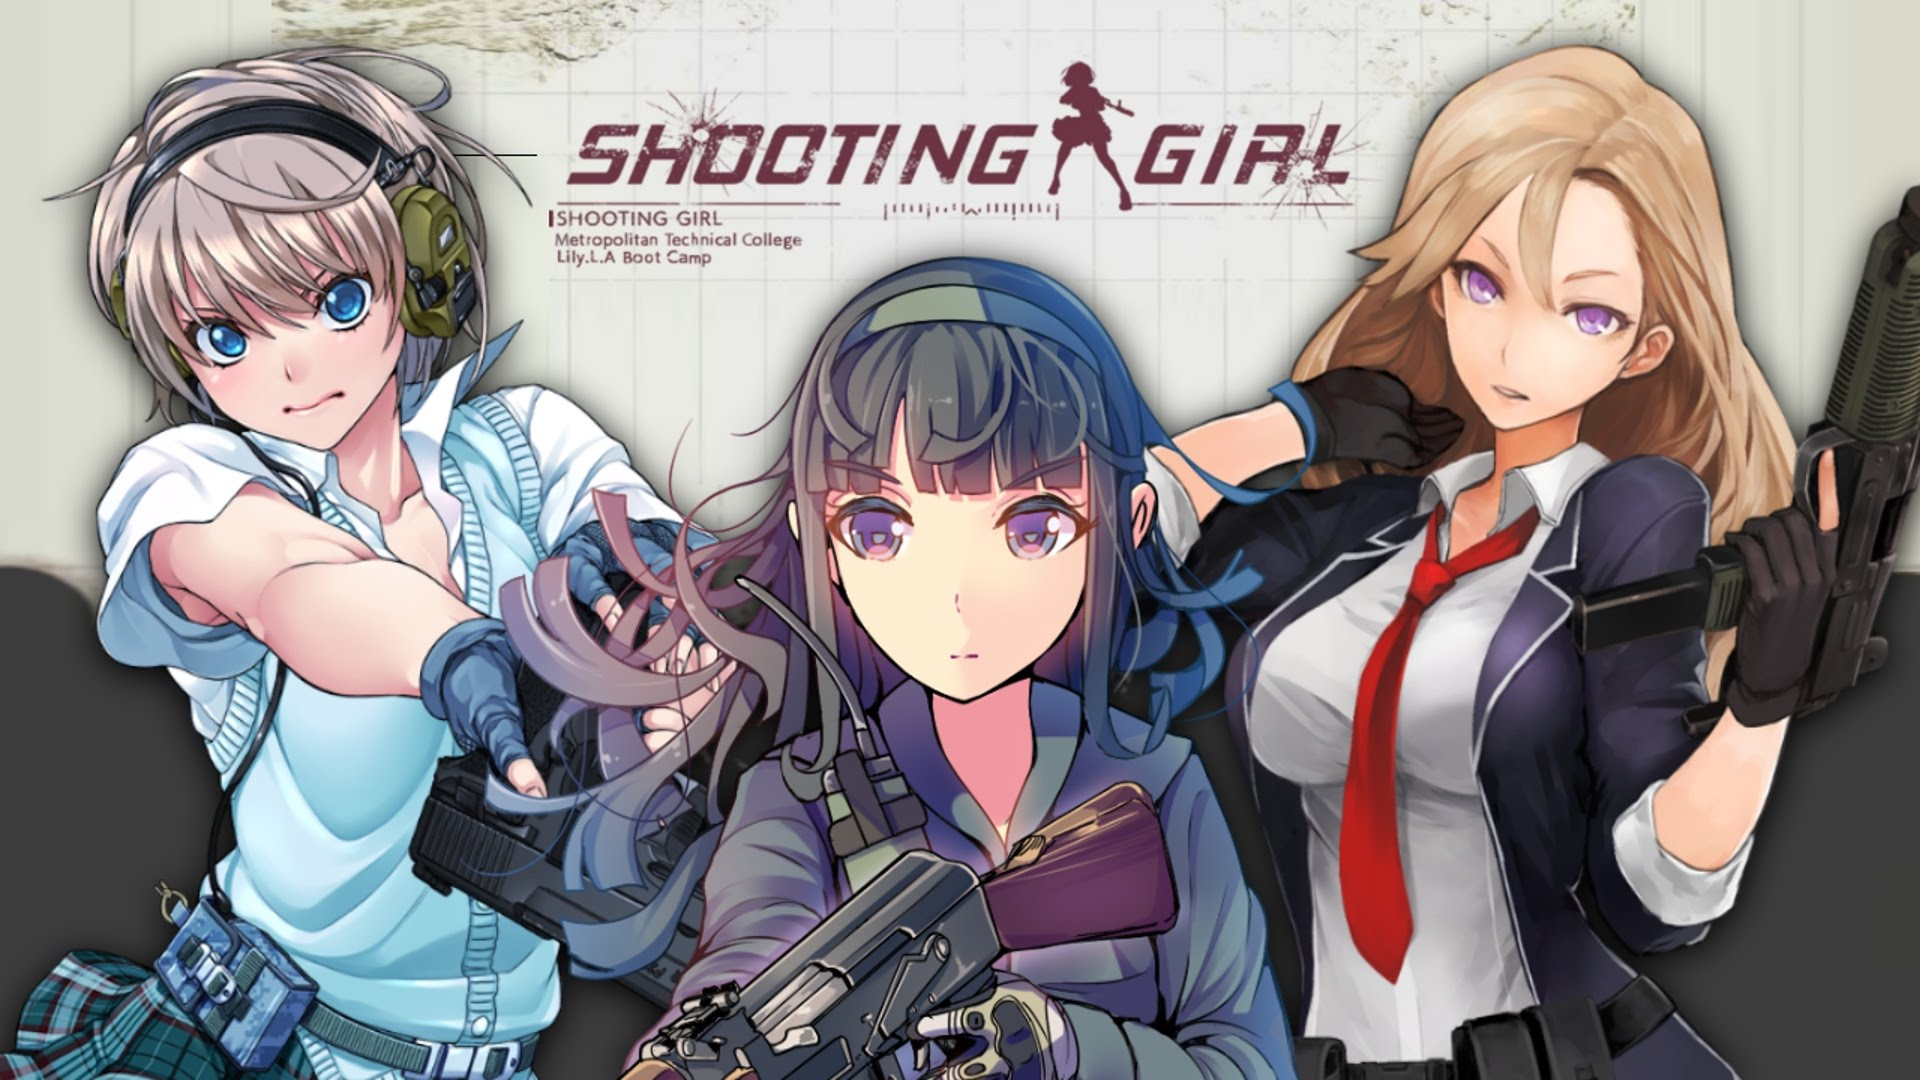 Shooting Girl